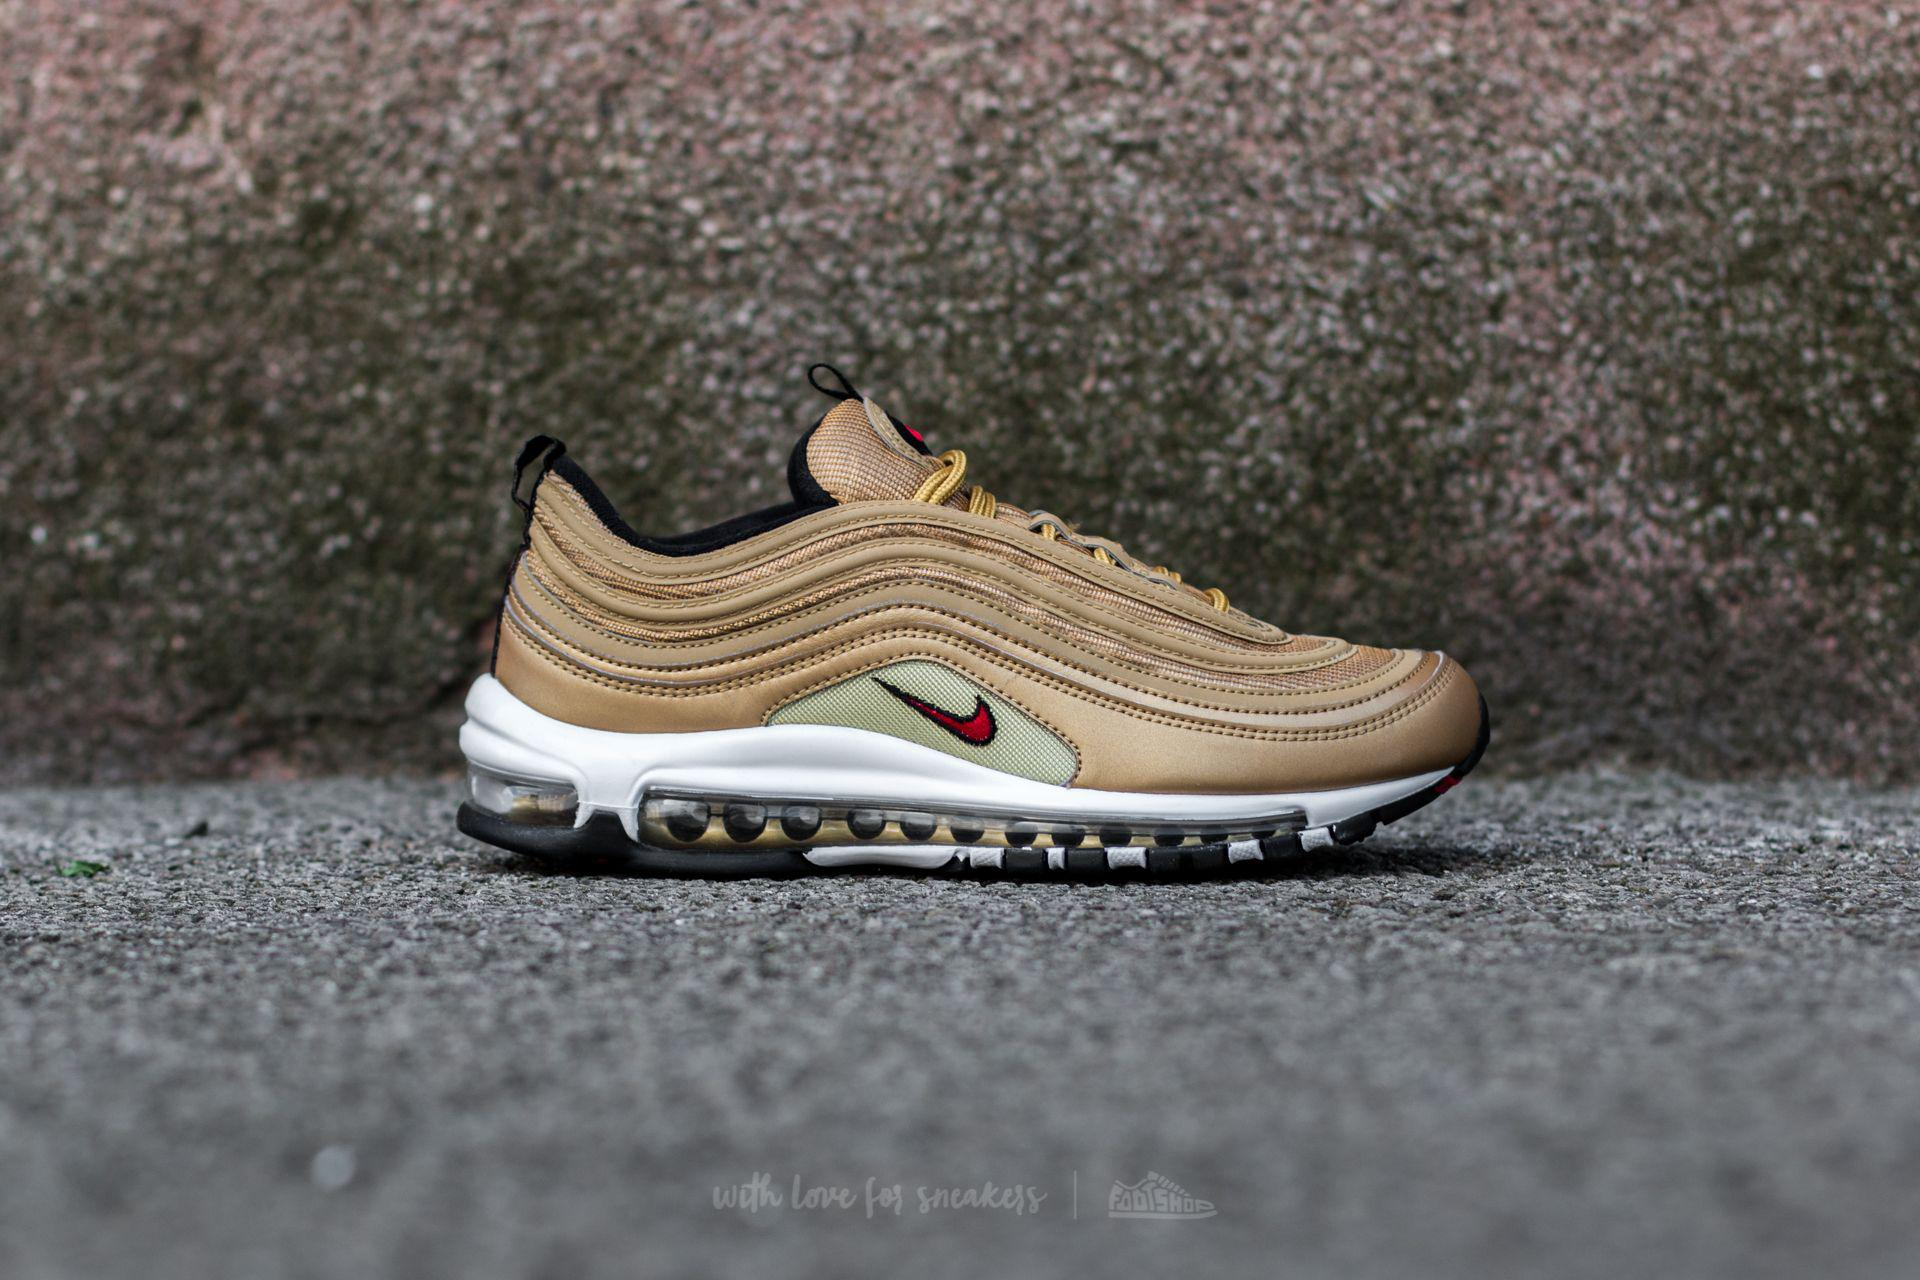 factory authentic 23e95 70168 Lyst - Nike W Air Max 97 Og Qs Metallic Gold Varsity Red in